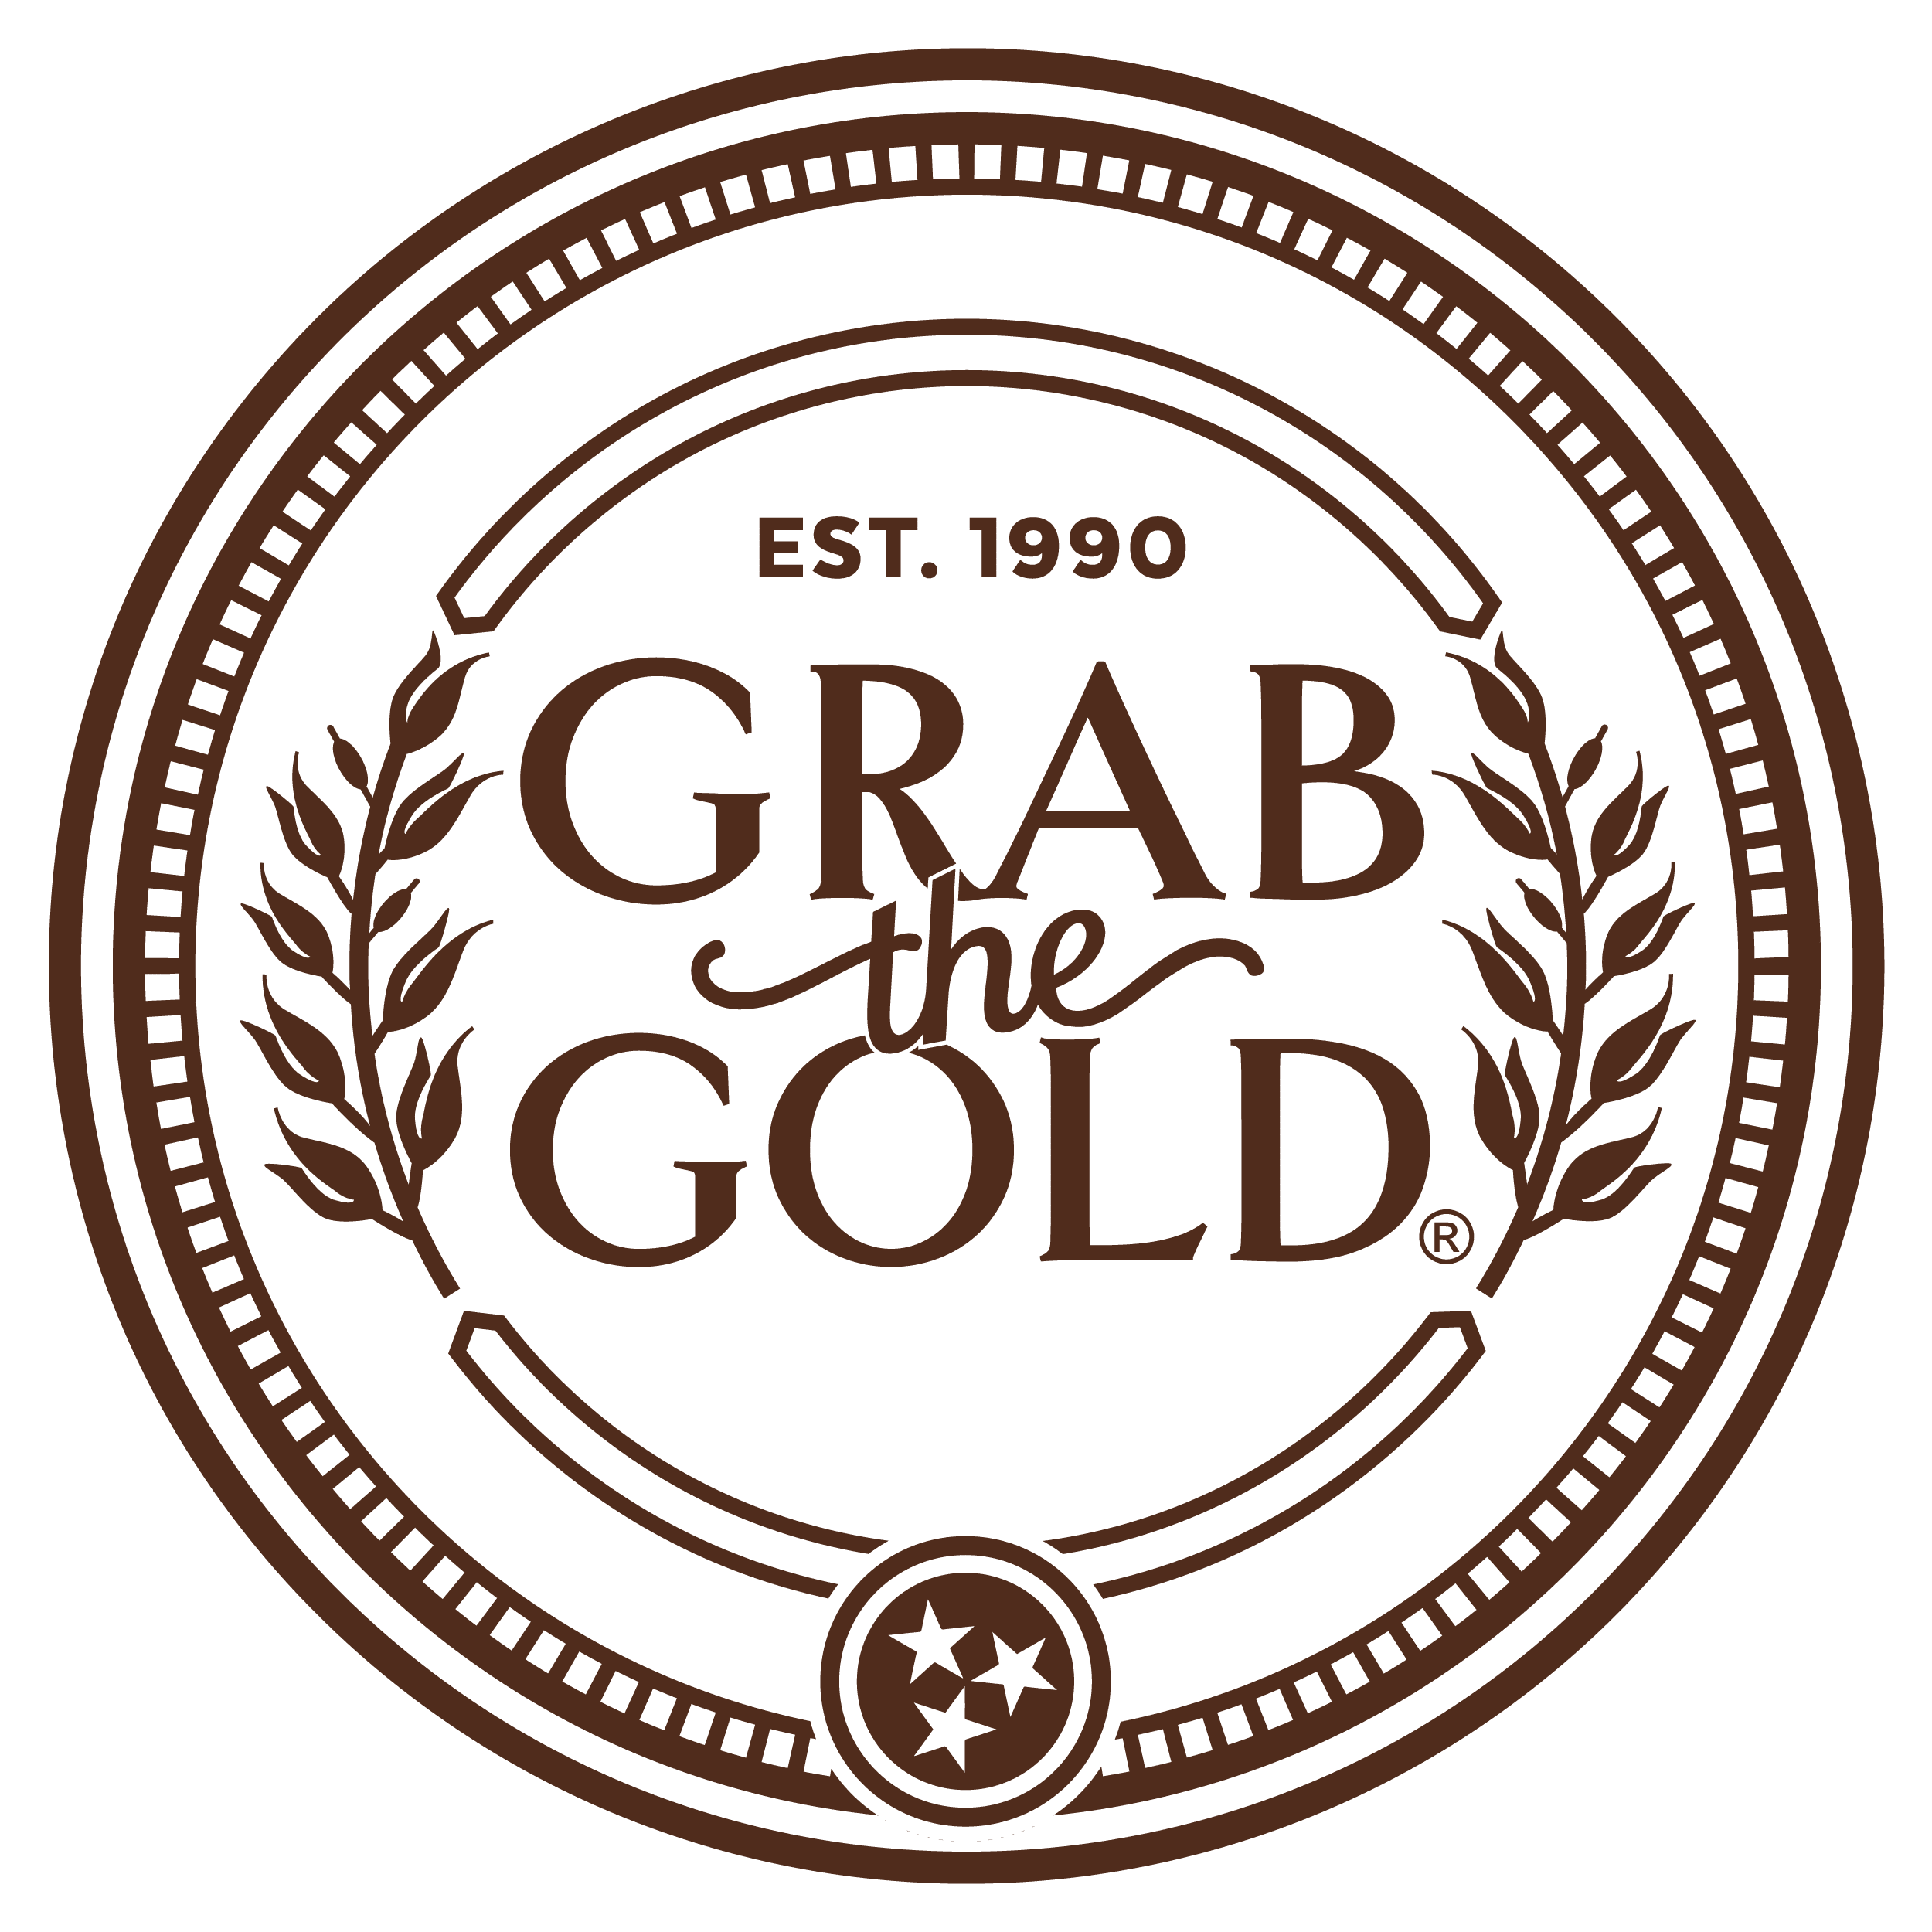 Grab The Gold Medallion 2020 One Color 04.21